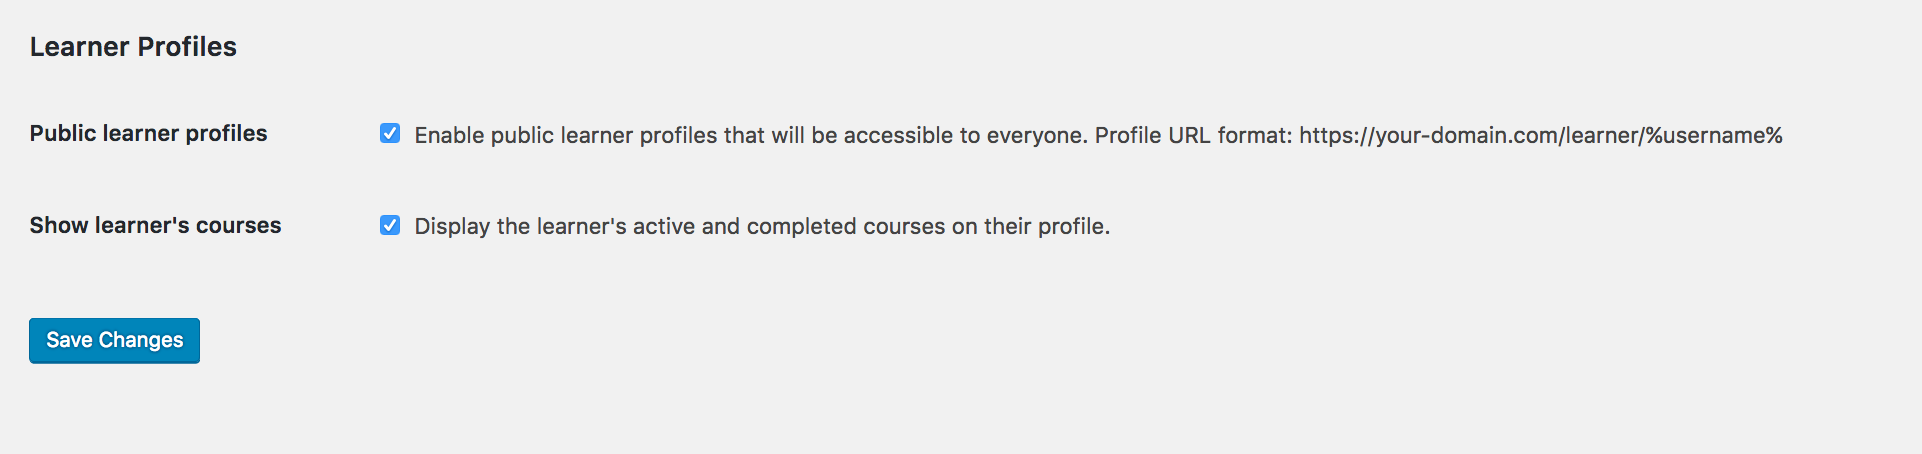 Sensei LMS Settings - Learner Profiles